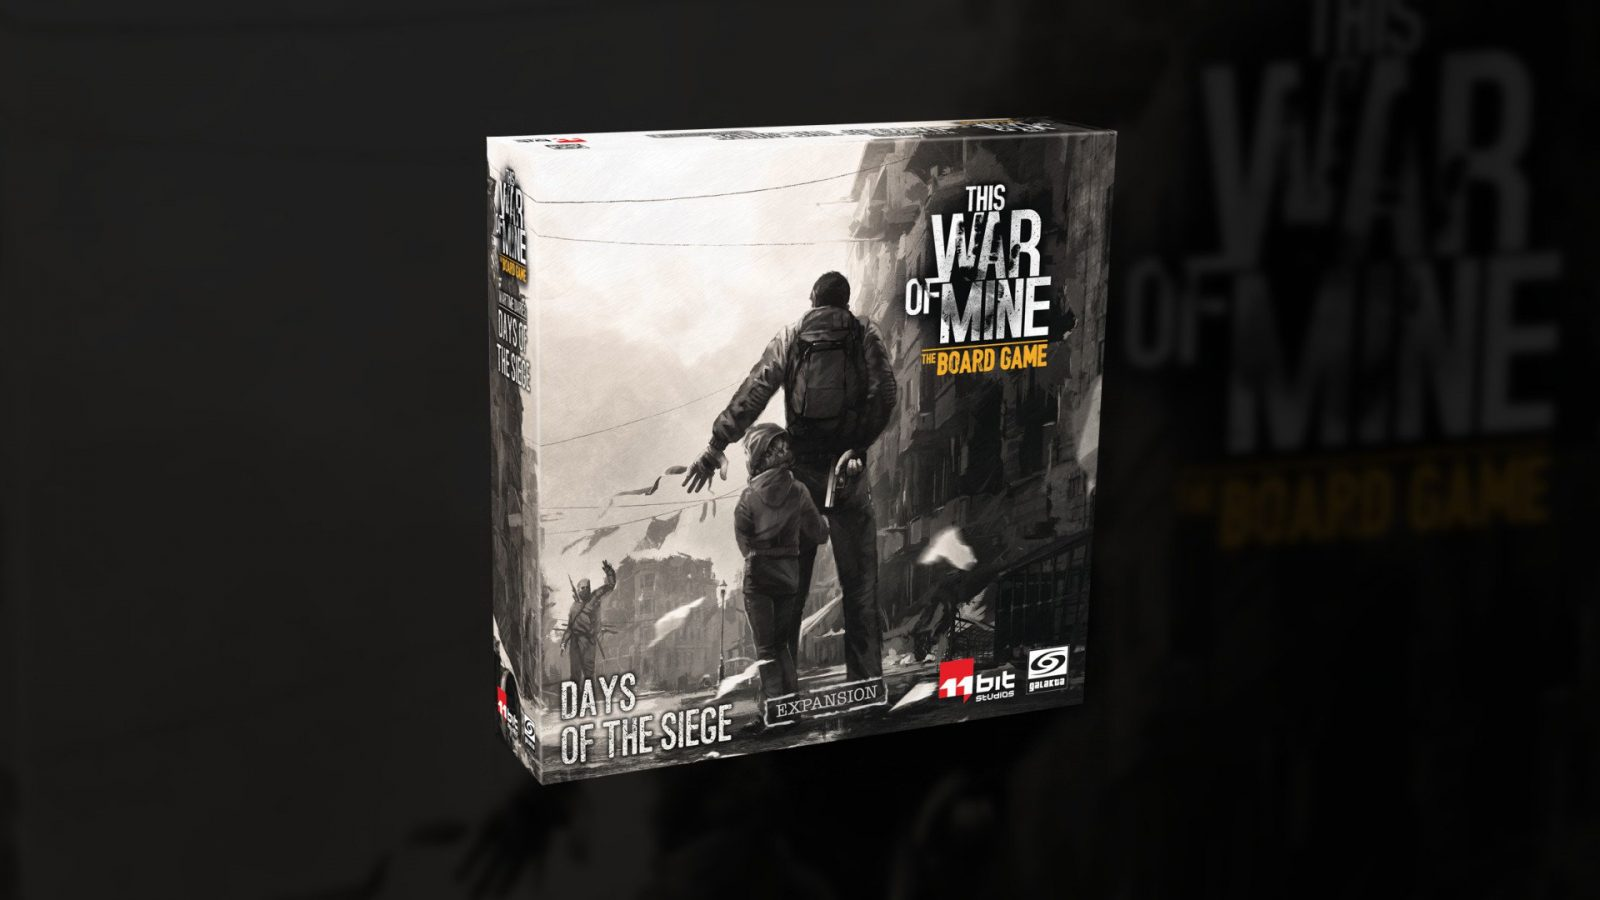 Days of the Siege is the Second Expansion for This War of Mine: The Board Game